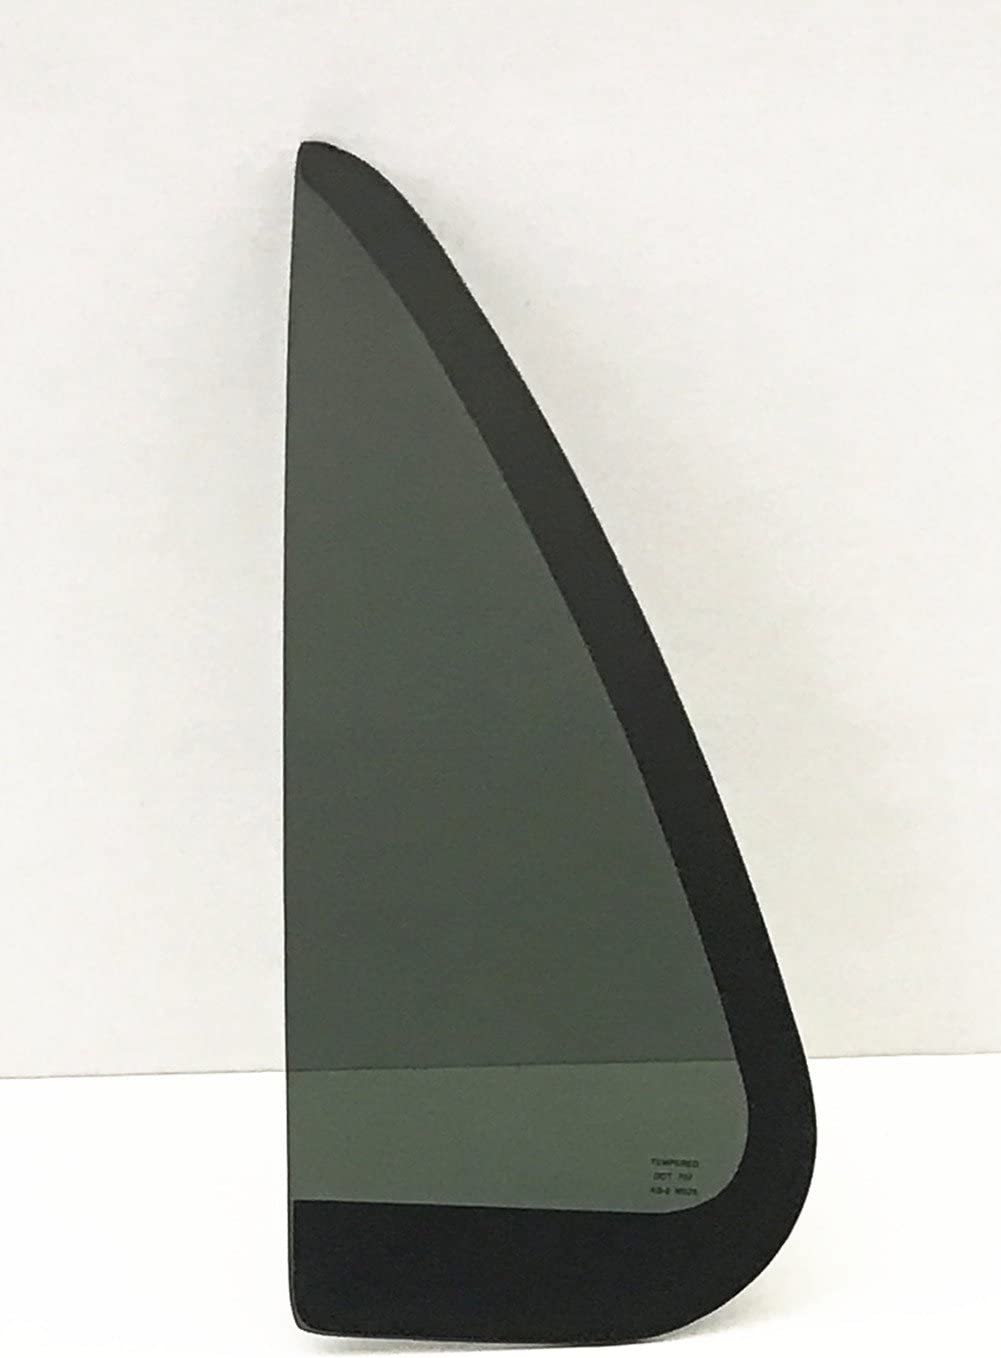 NEW before selling NAGD Driver Left Side Rear Glass Compatible Las Vegas Mall wit Vent Window